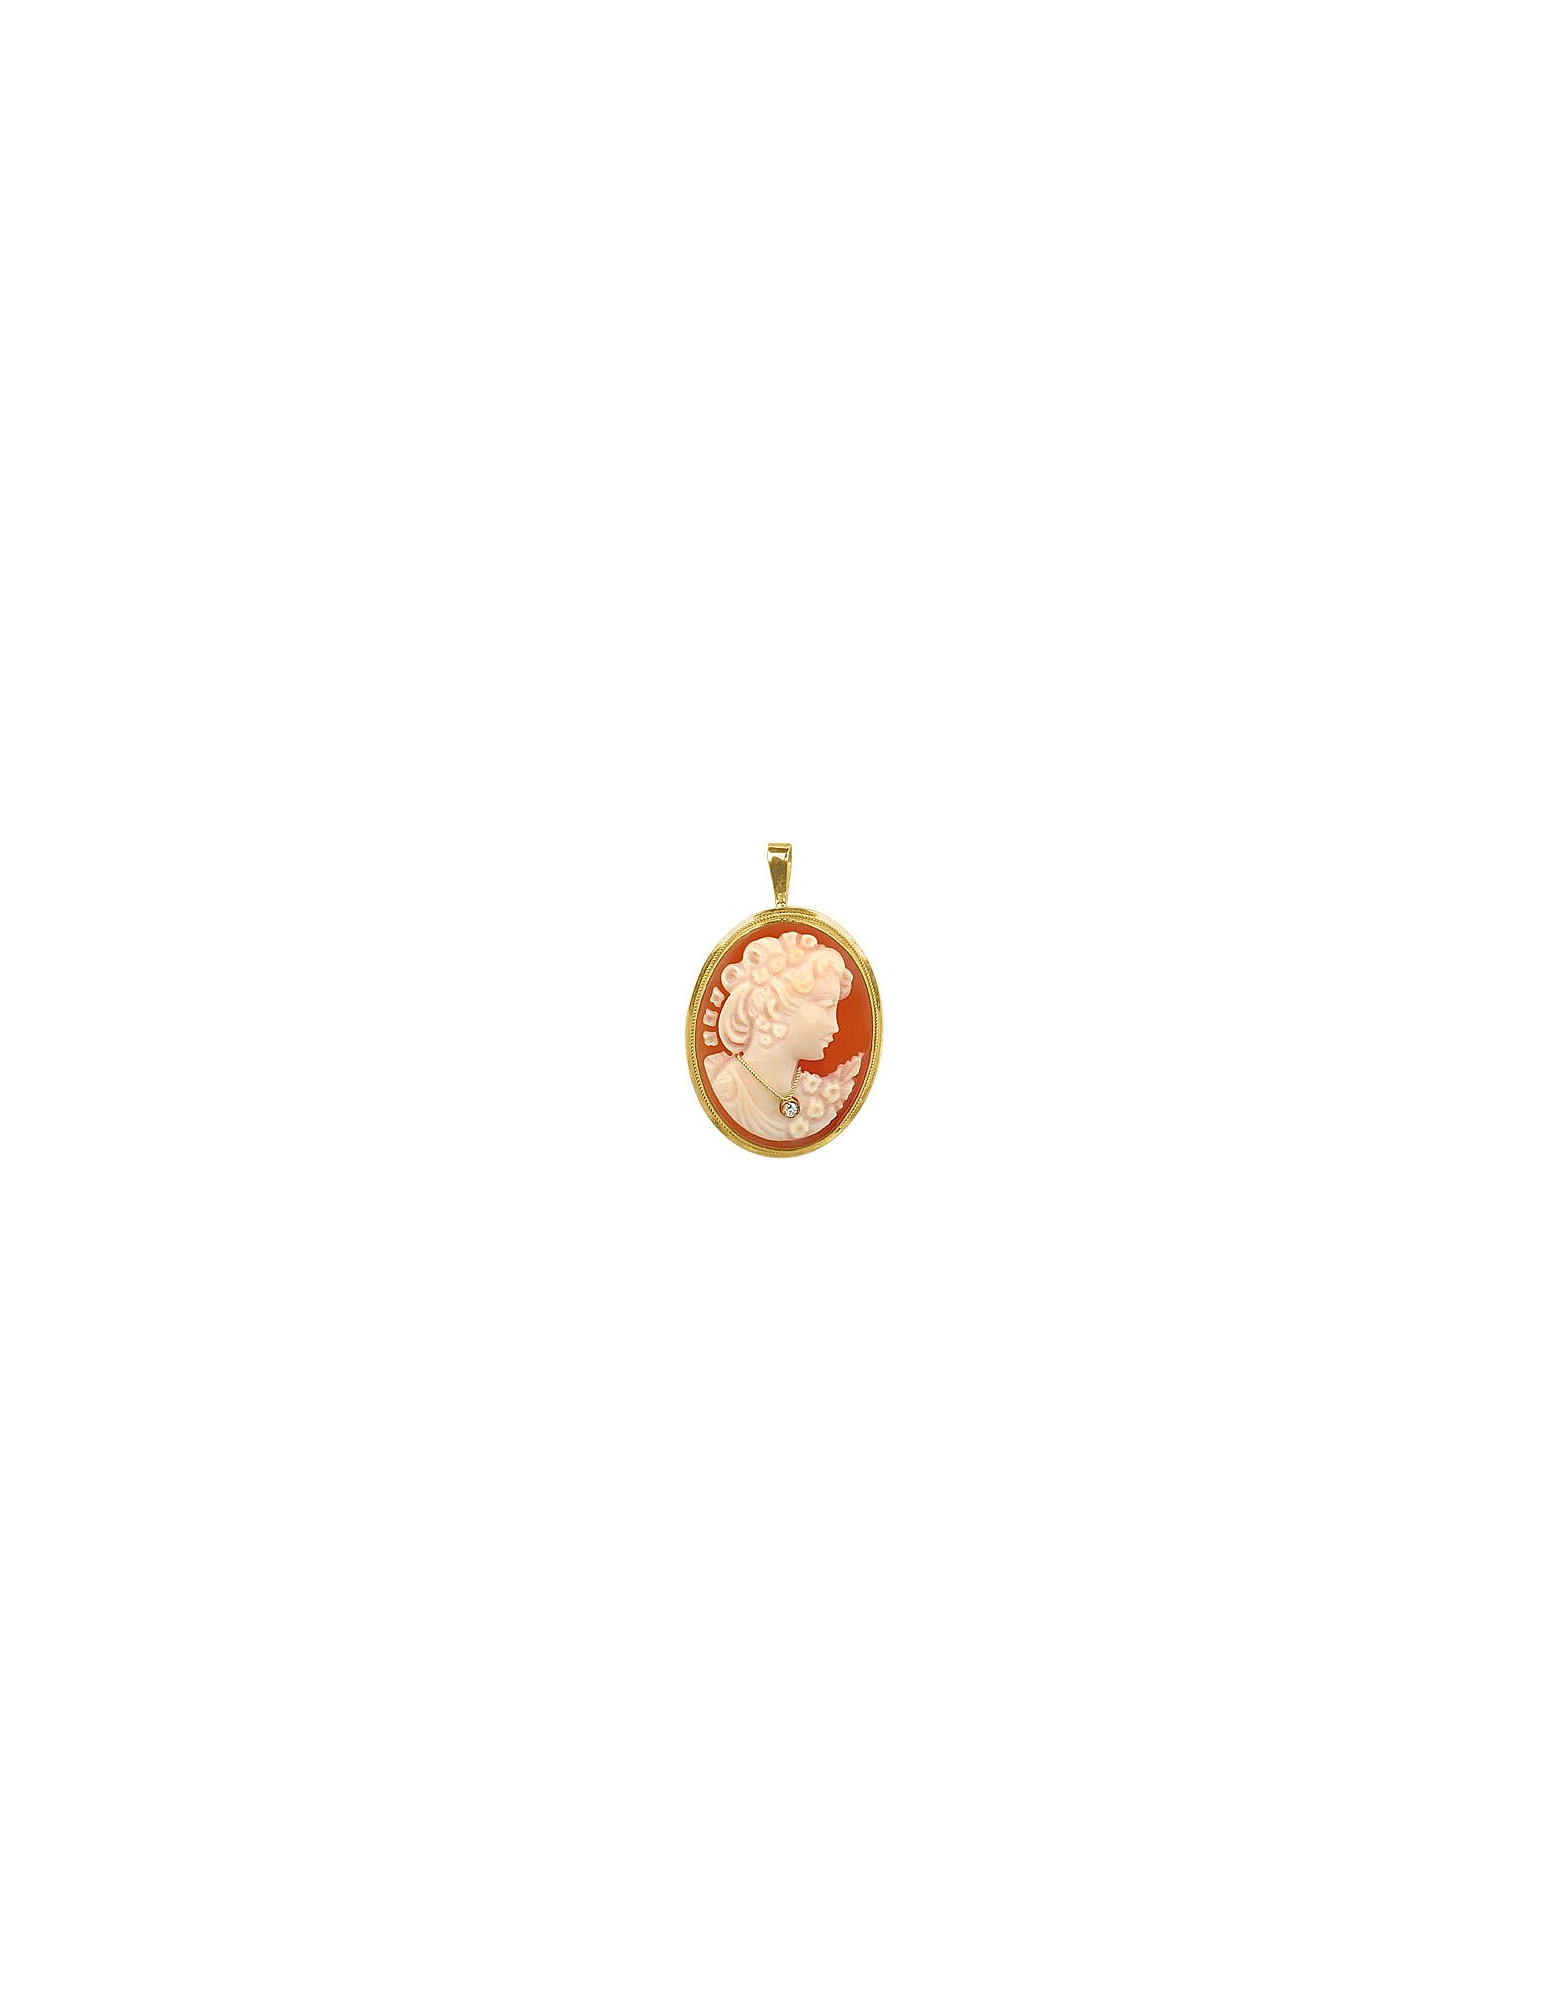 Del Gatto Cameo, Woman with Diamond Necklace Cornelian Cameo Pendant / Pin